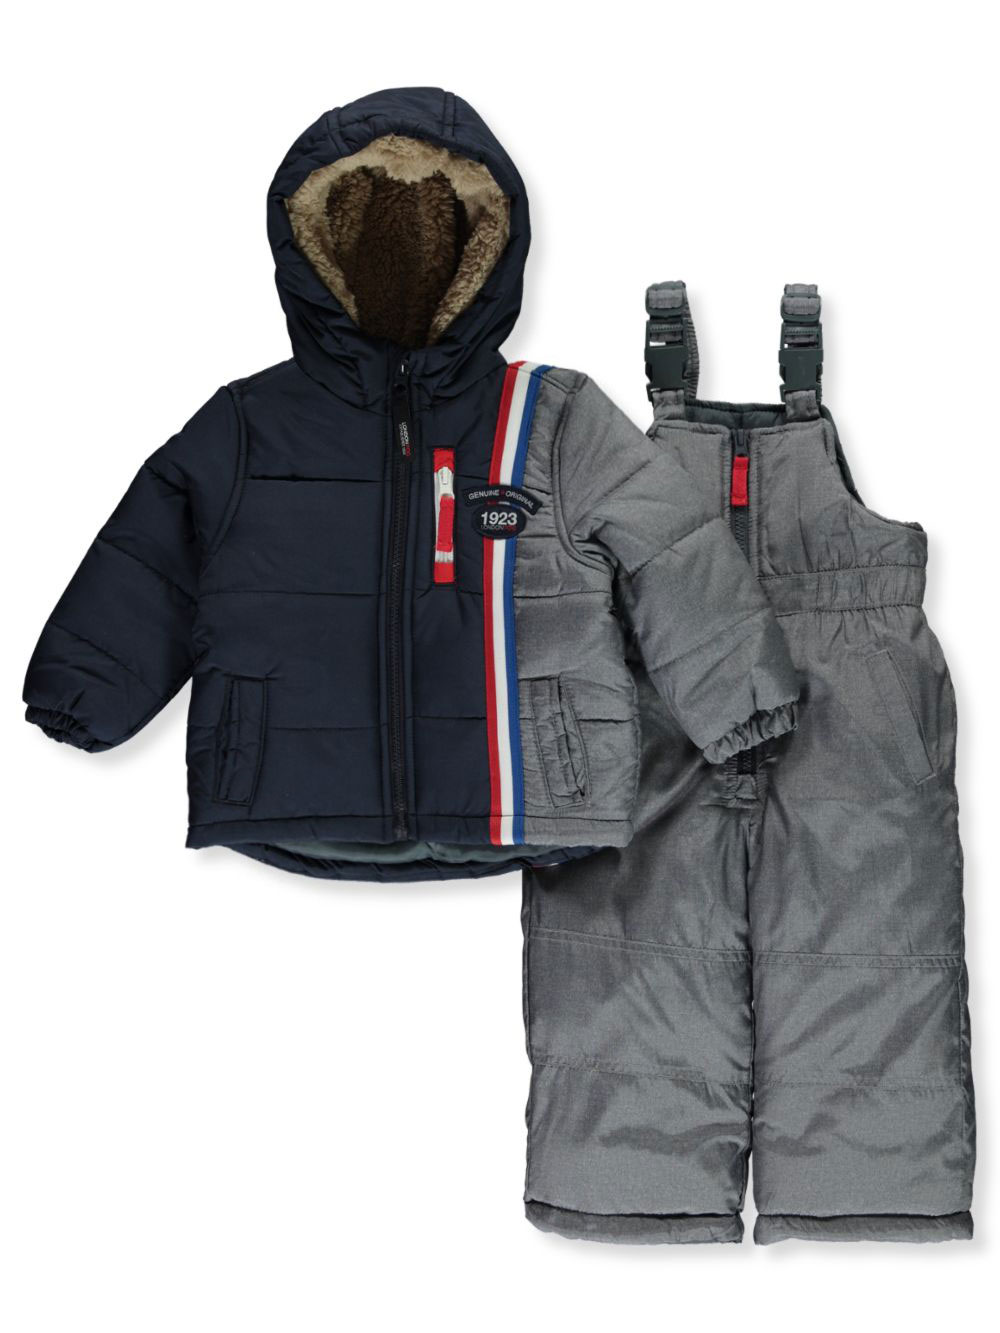 London Fog Baby Boys Jacket with Striped Sleeves